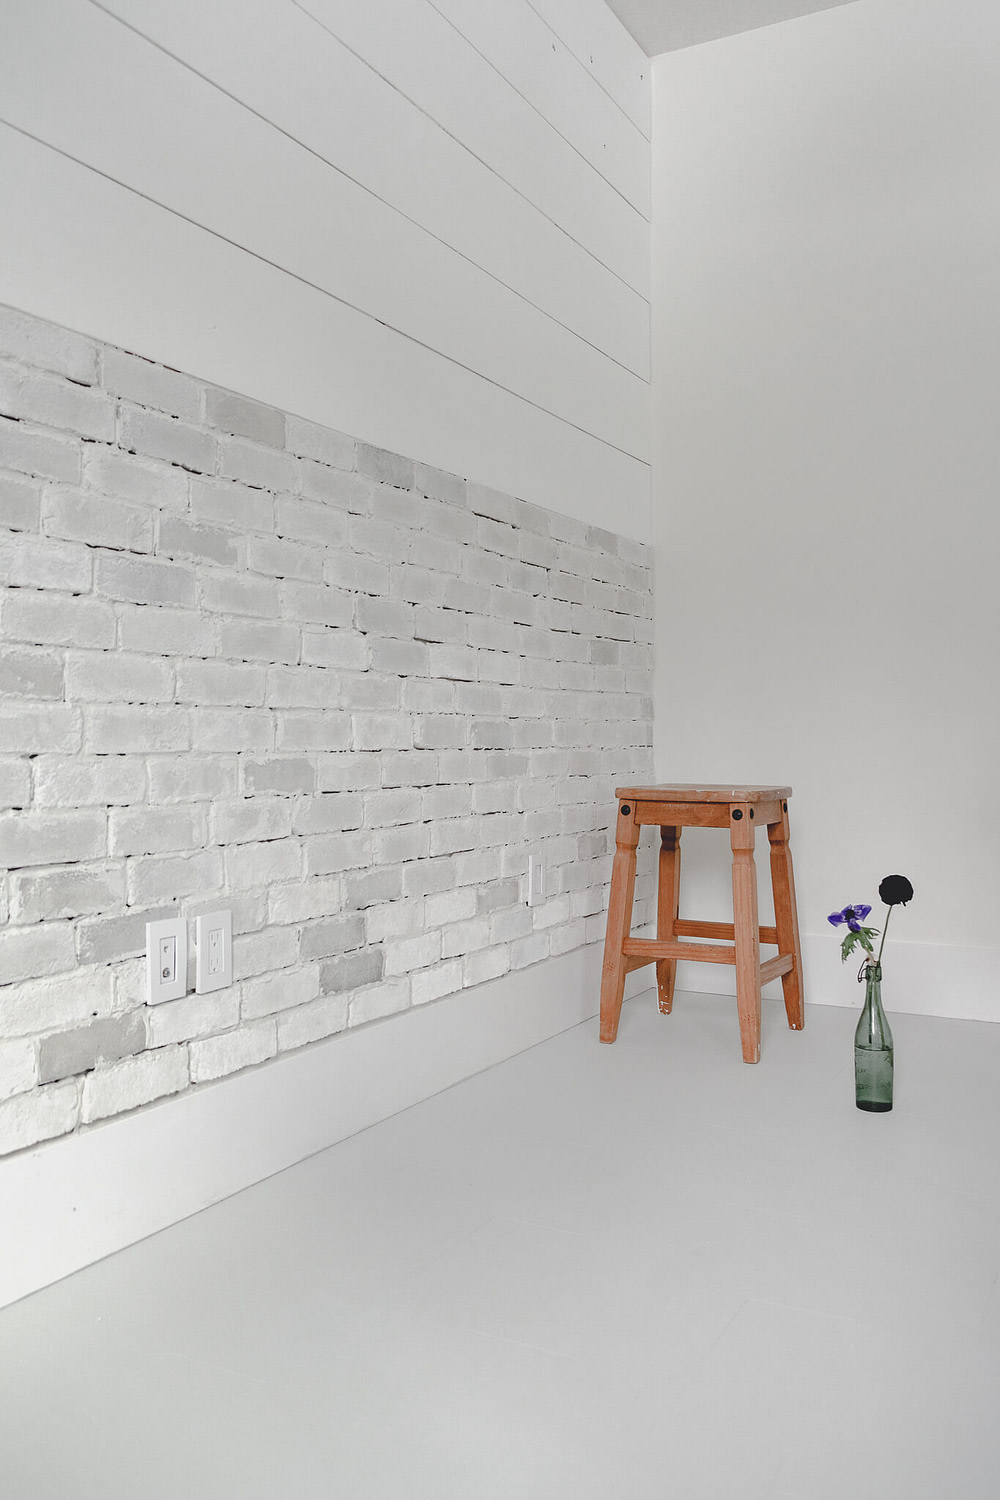 Thin Brick Wall Tutorial with stool and green vintage Belgium beer bottle vase